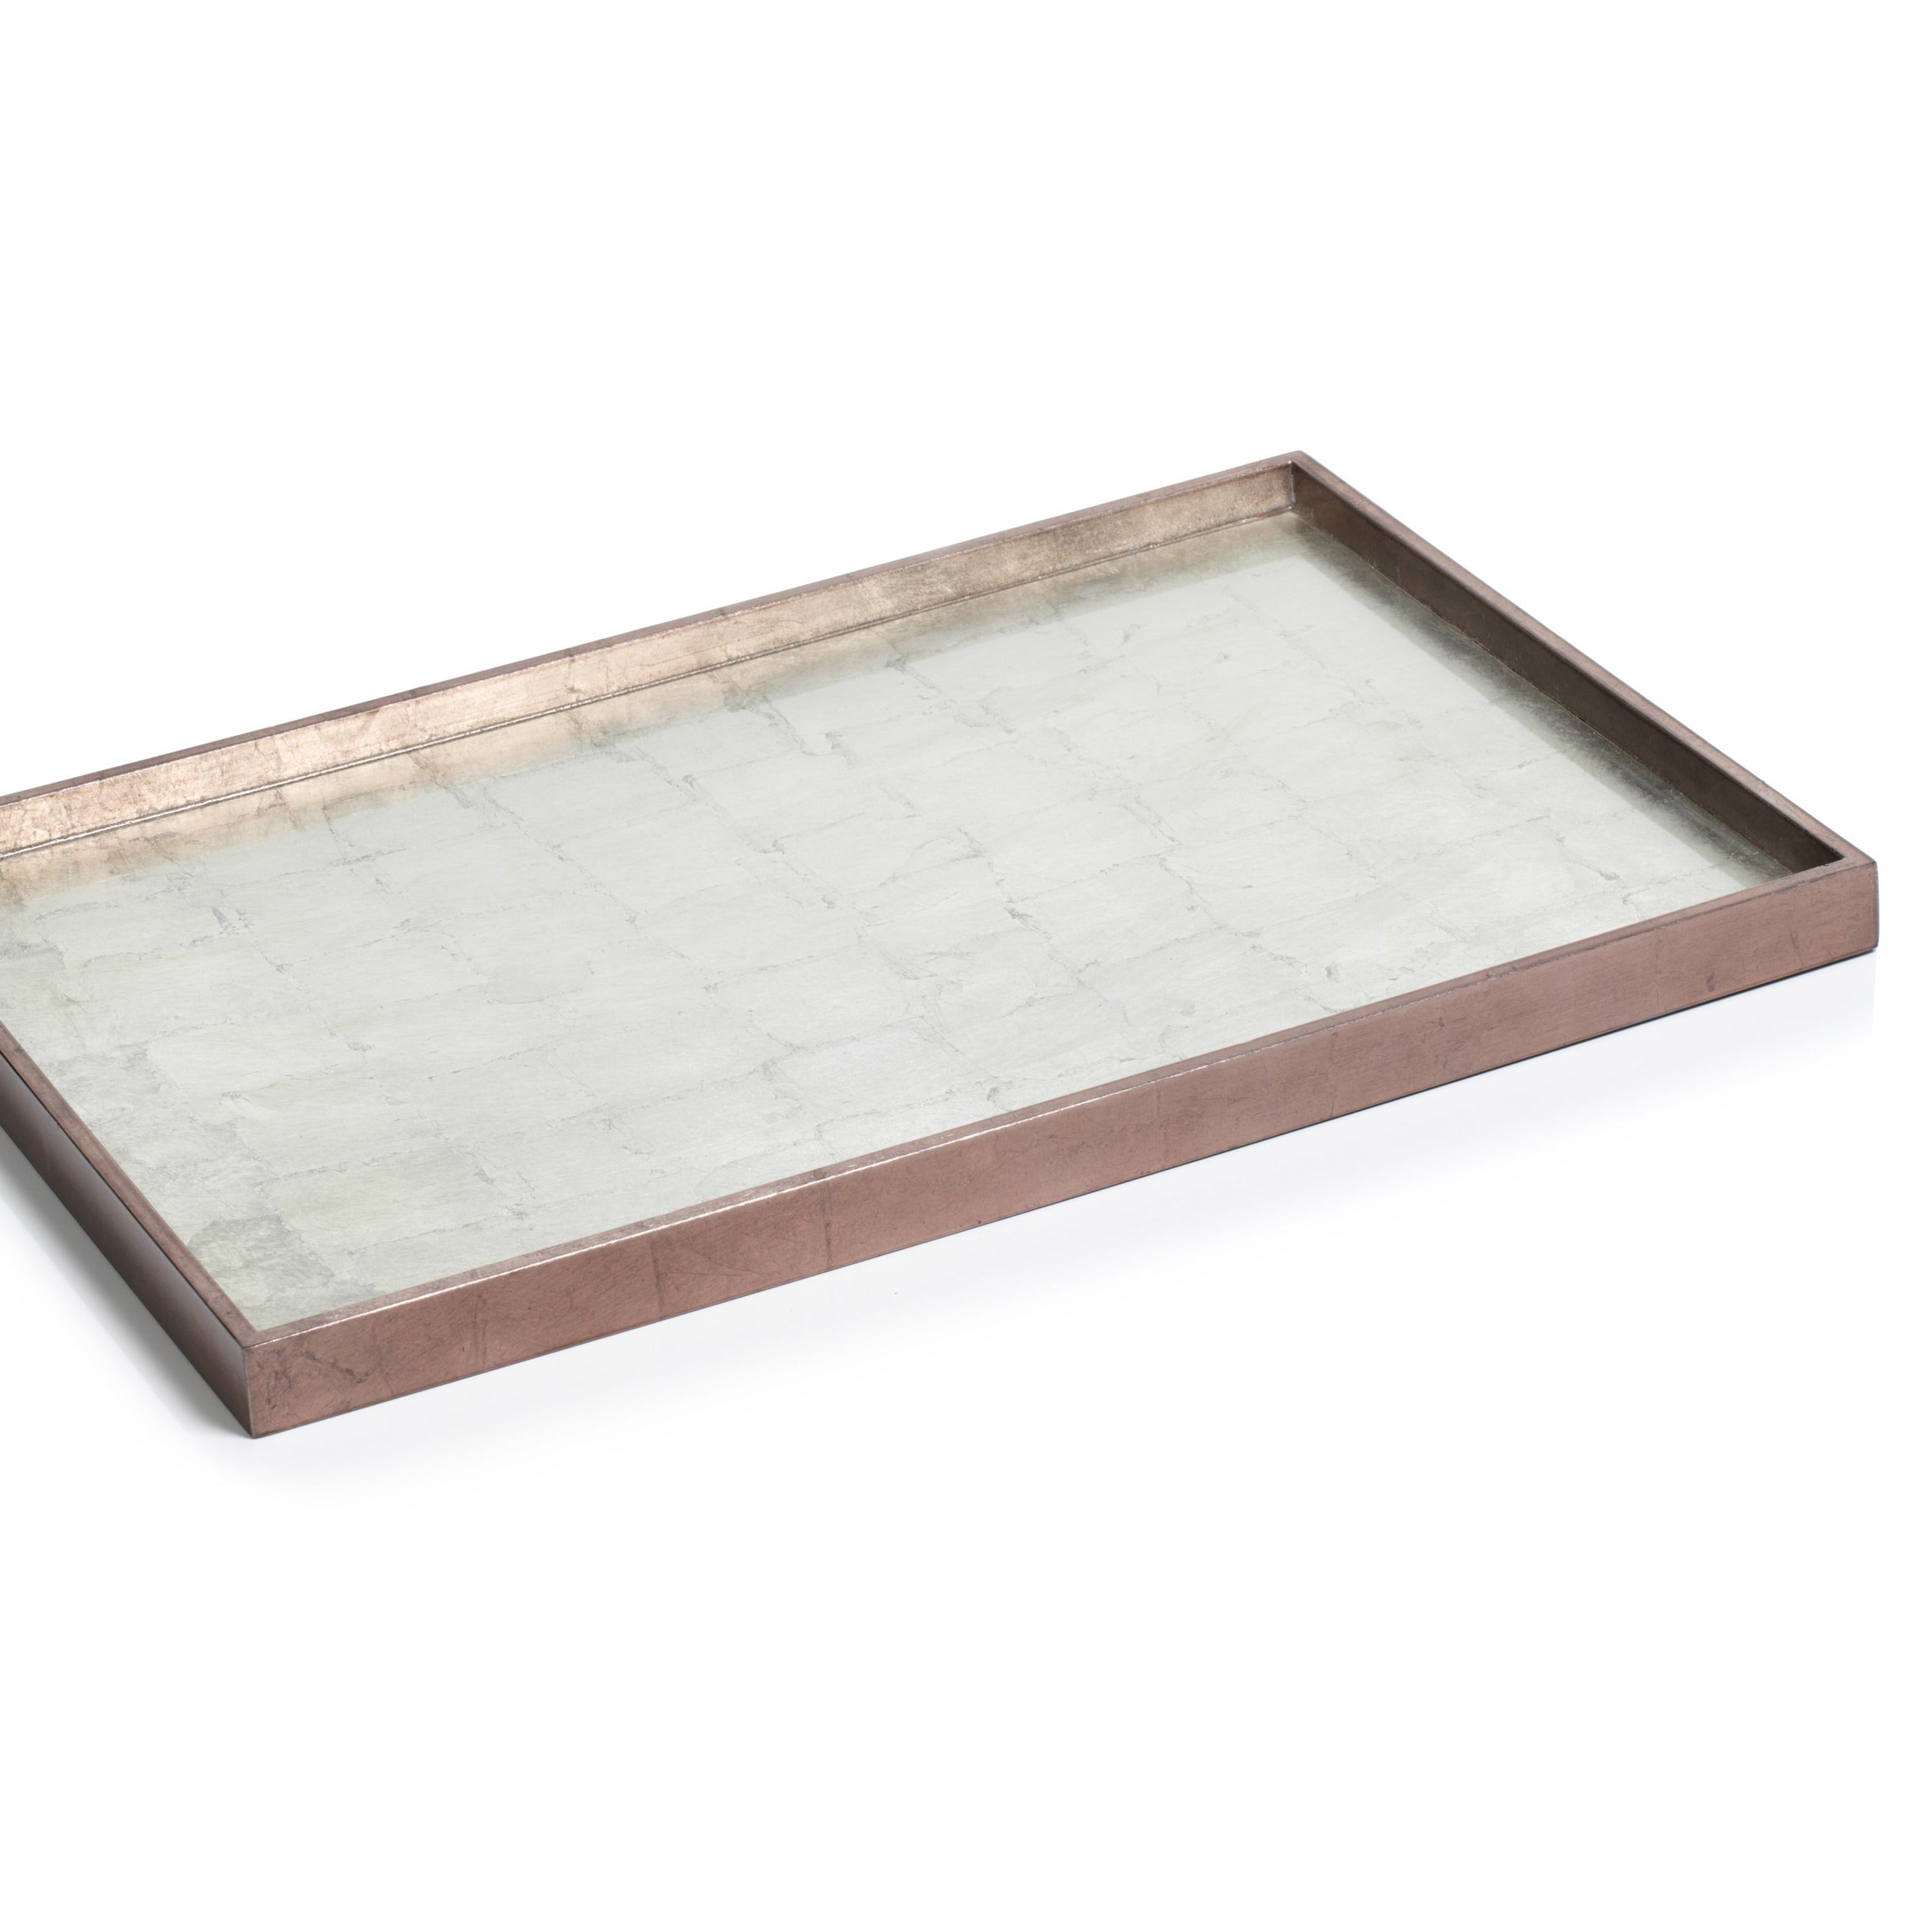 Antique Rose Gold and Silver Serving Tray - CARLYLE AVENUE